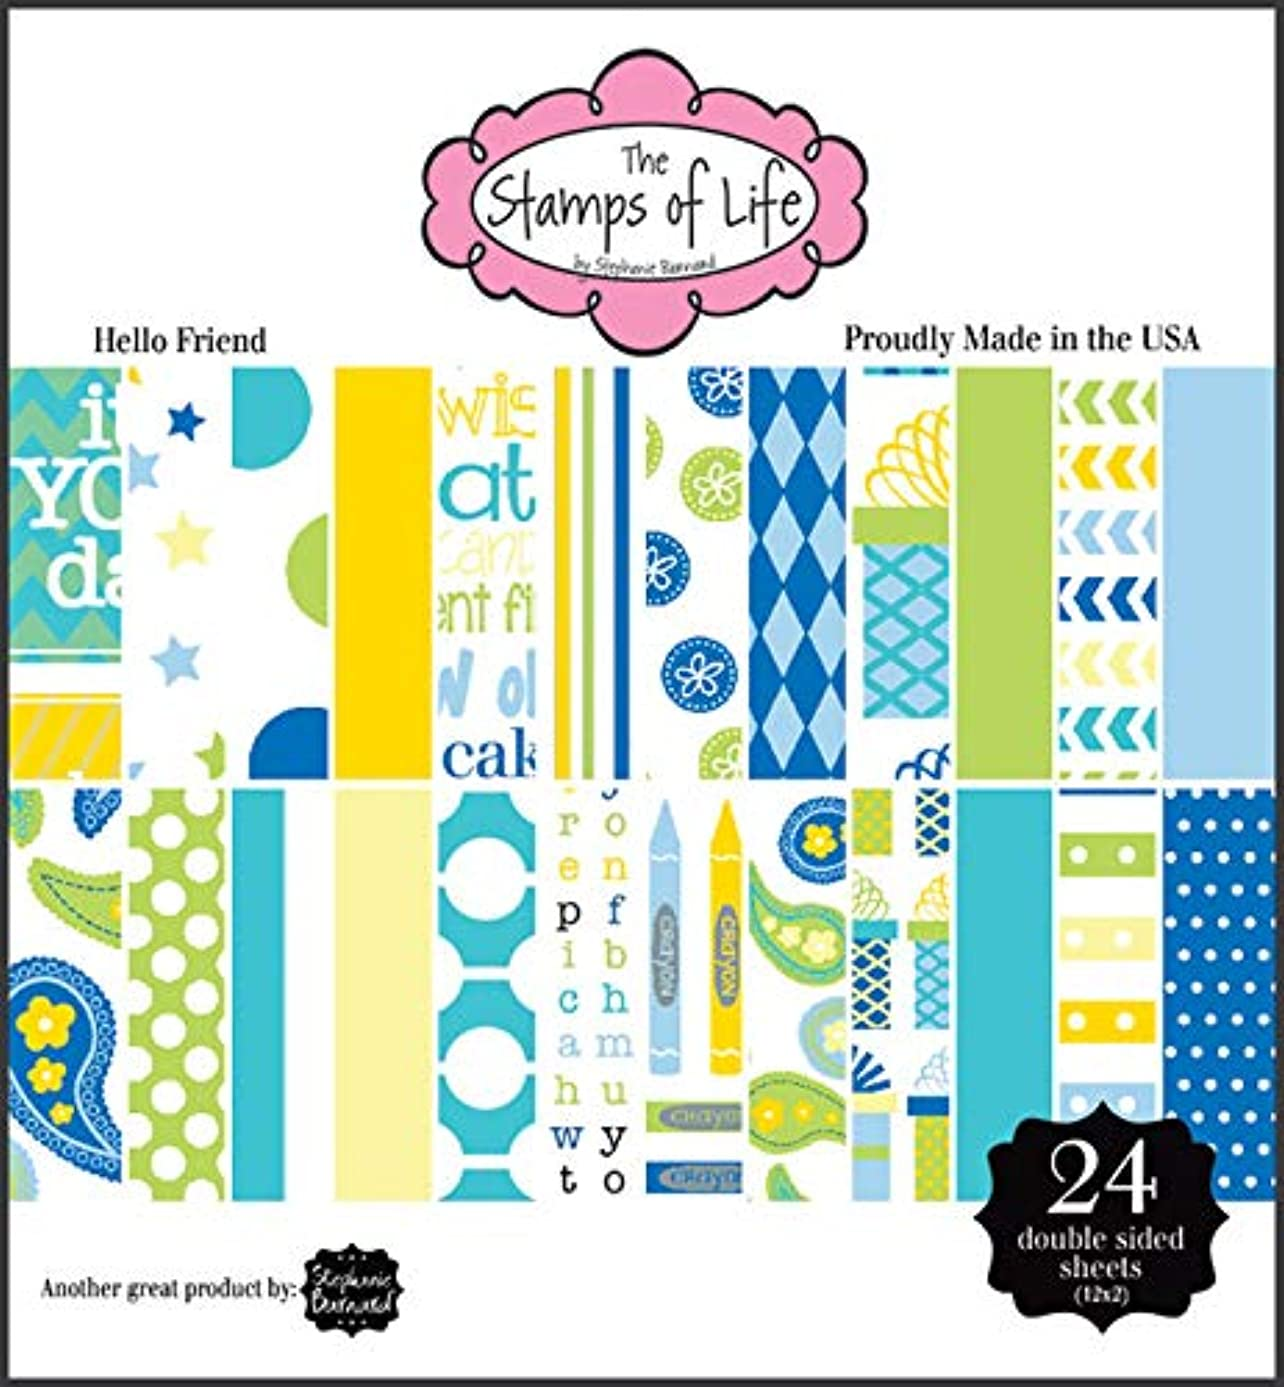 Hello Friend Patterned Paper Pad for Card-Making and Scrapbooking by The Stamps of Life - 24 Sheets 6